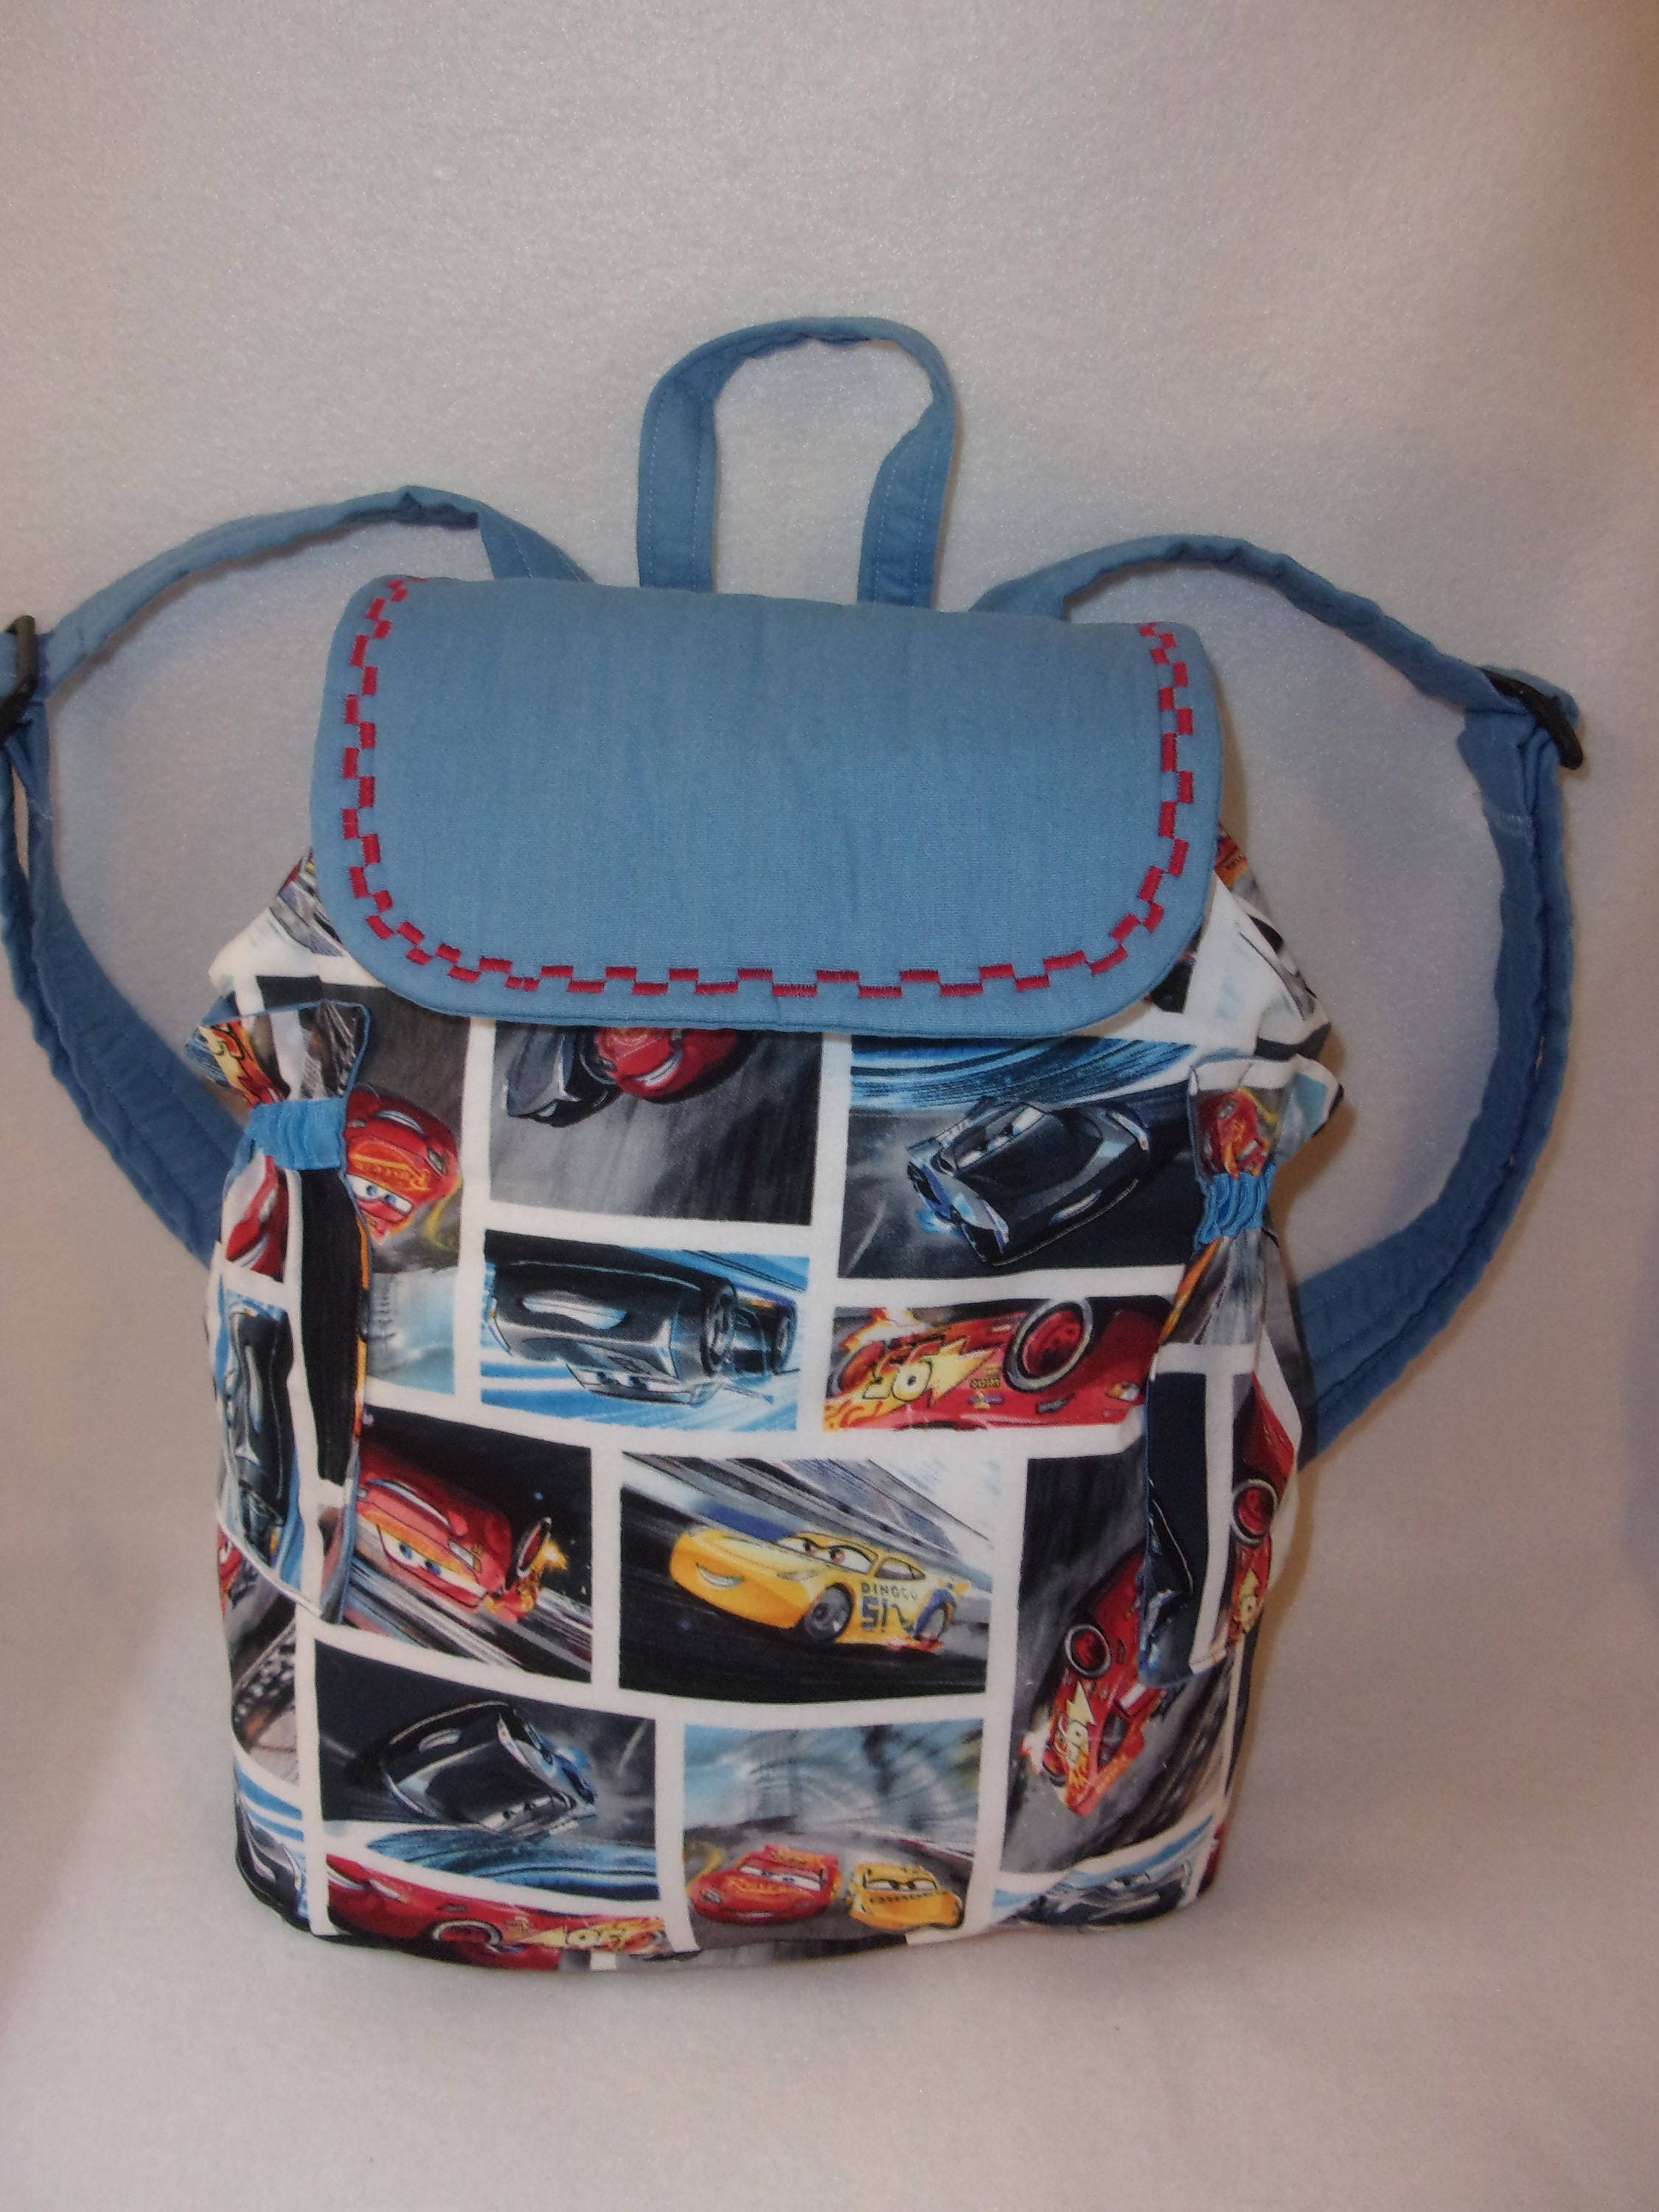 Pixar cars 3 back pack shool book bag college too 3 sizes 3 prints pixar cars 3 back pack shool book bag college too 3 sizes 3 prints personalize negle